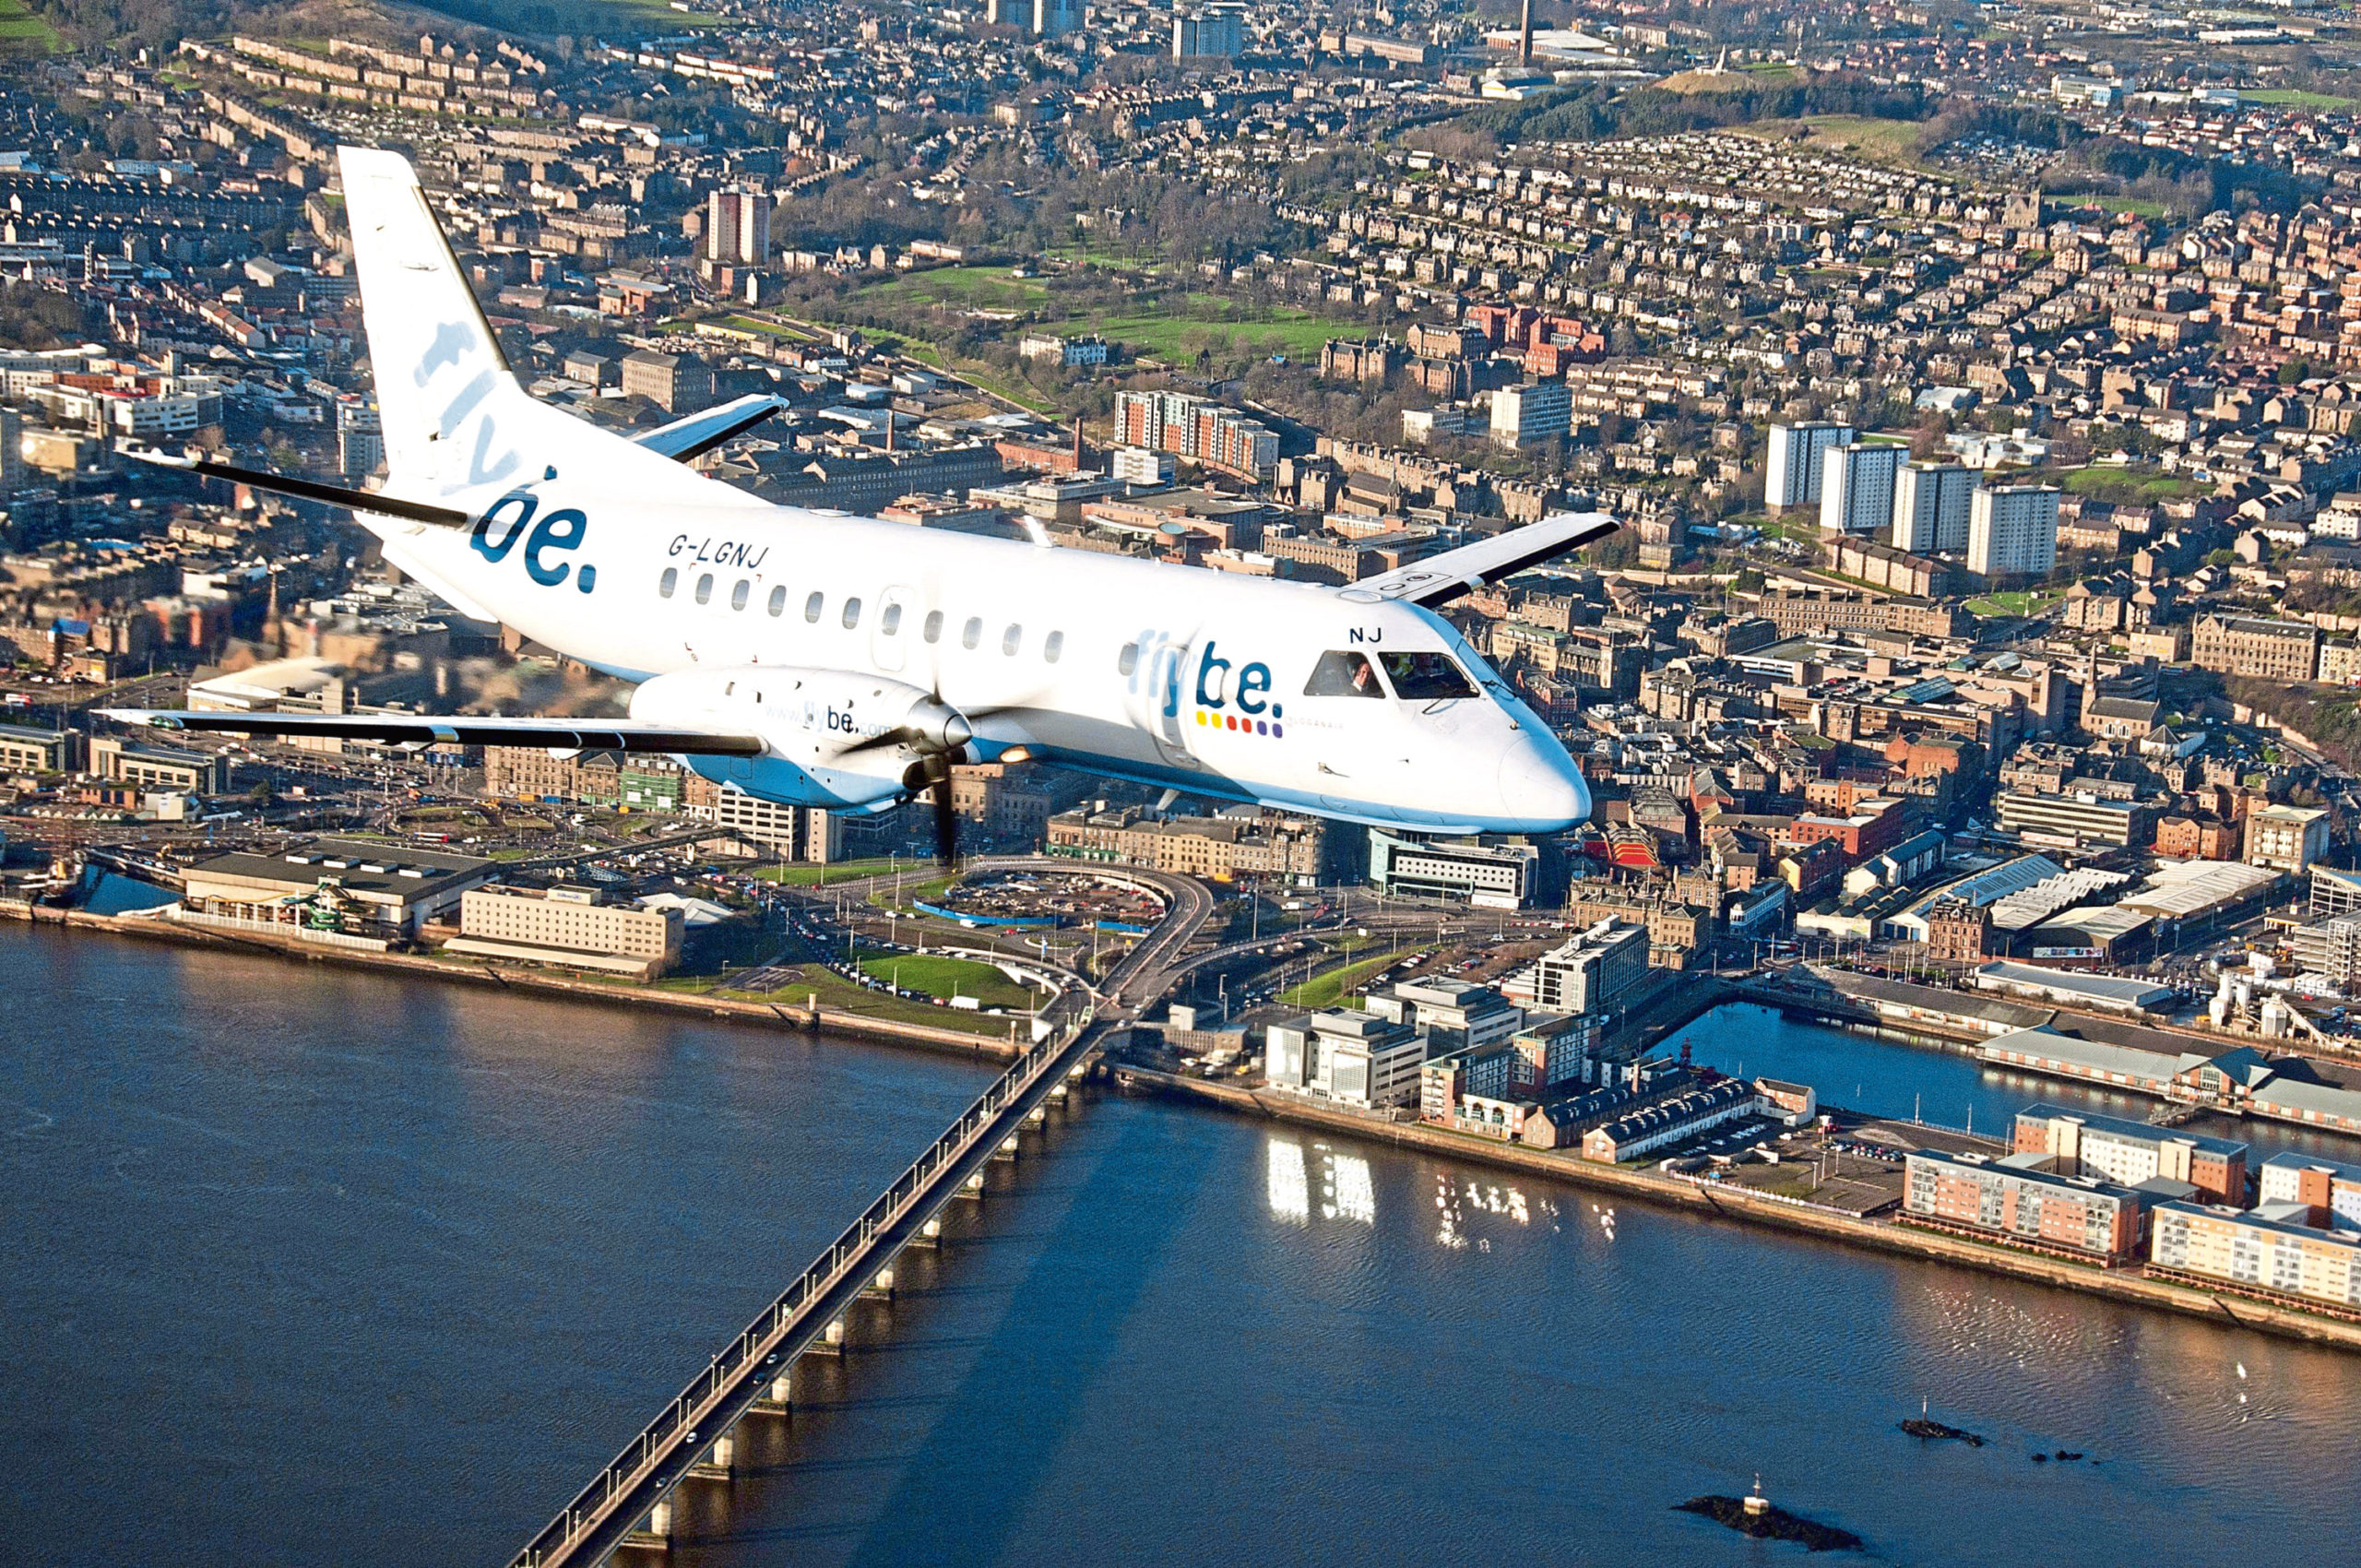 Loganair Flybe aircraft over Dundee A Loganair Flybe aircraft over Dundee.